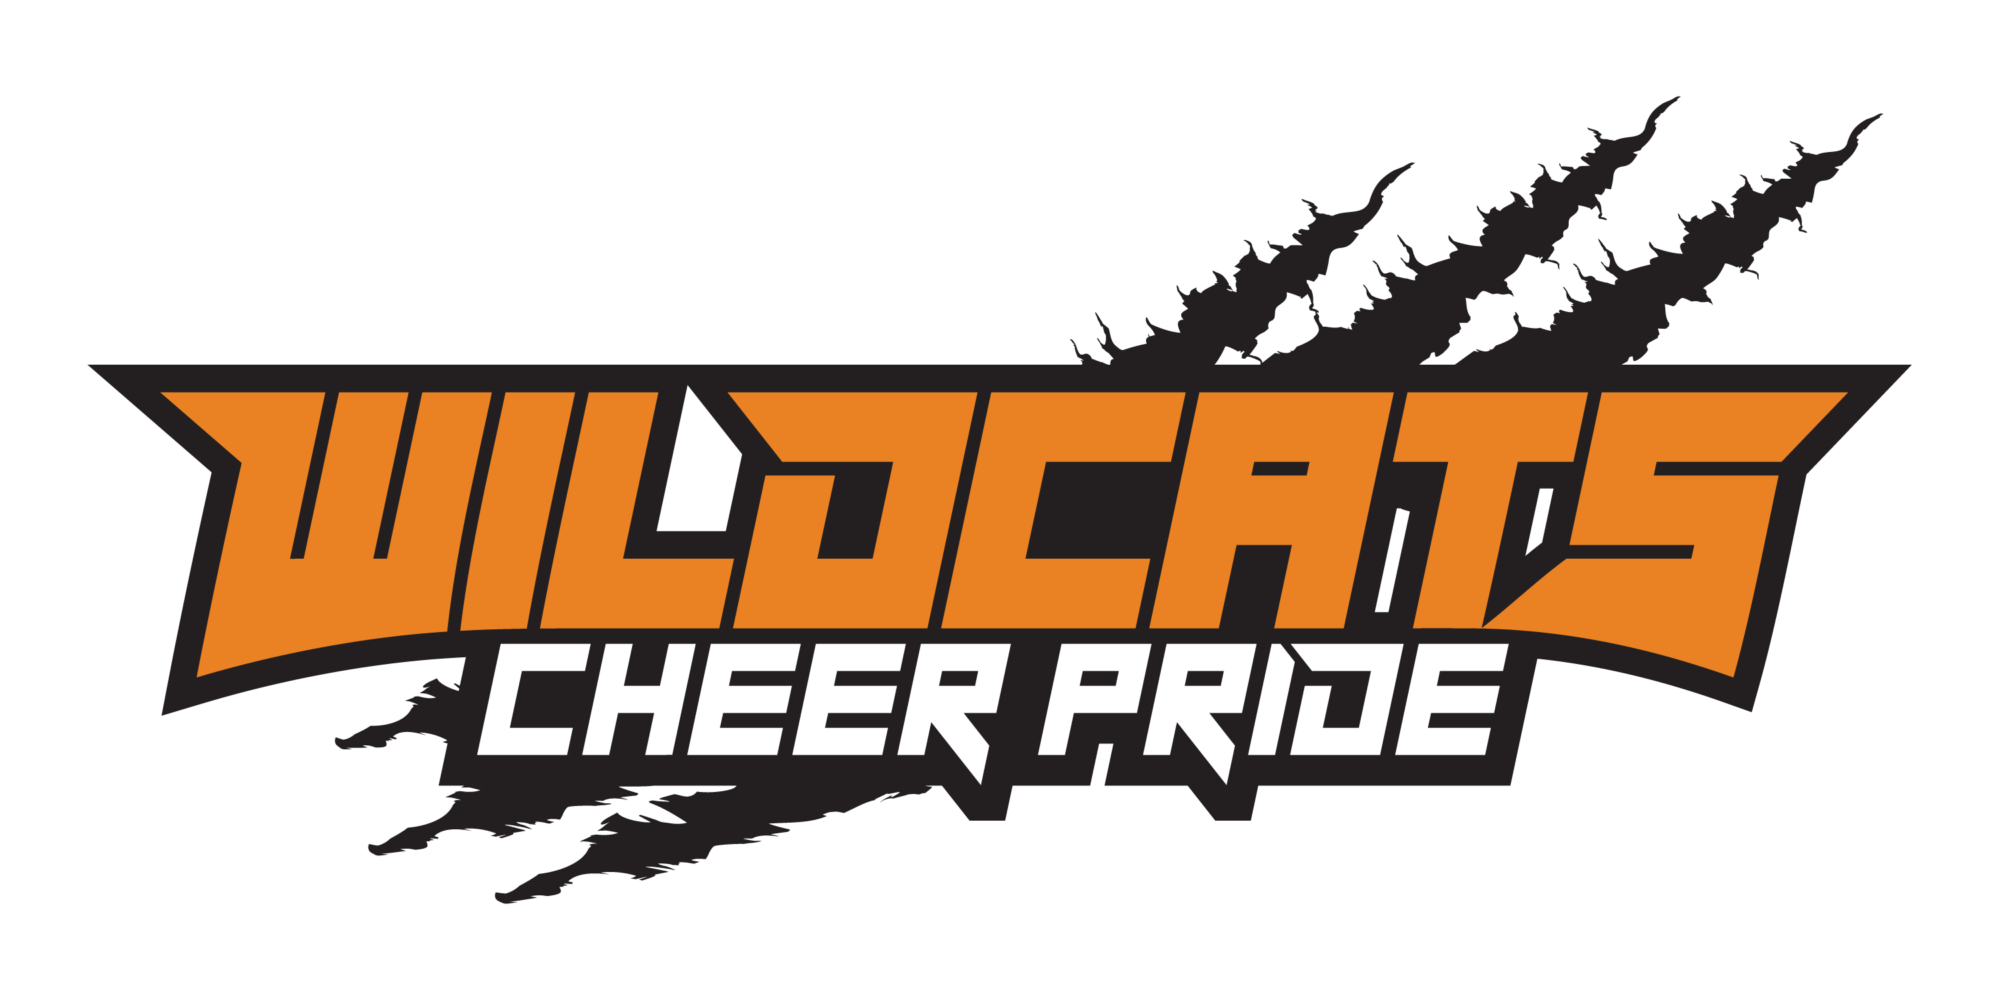 Wildcats Cheer Pride